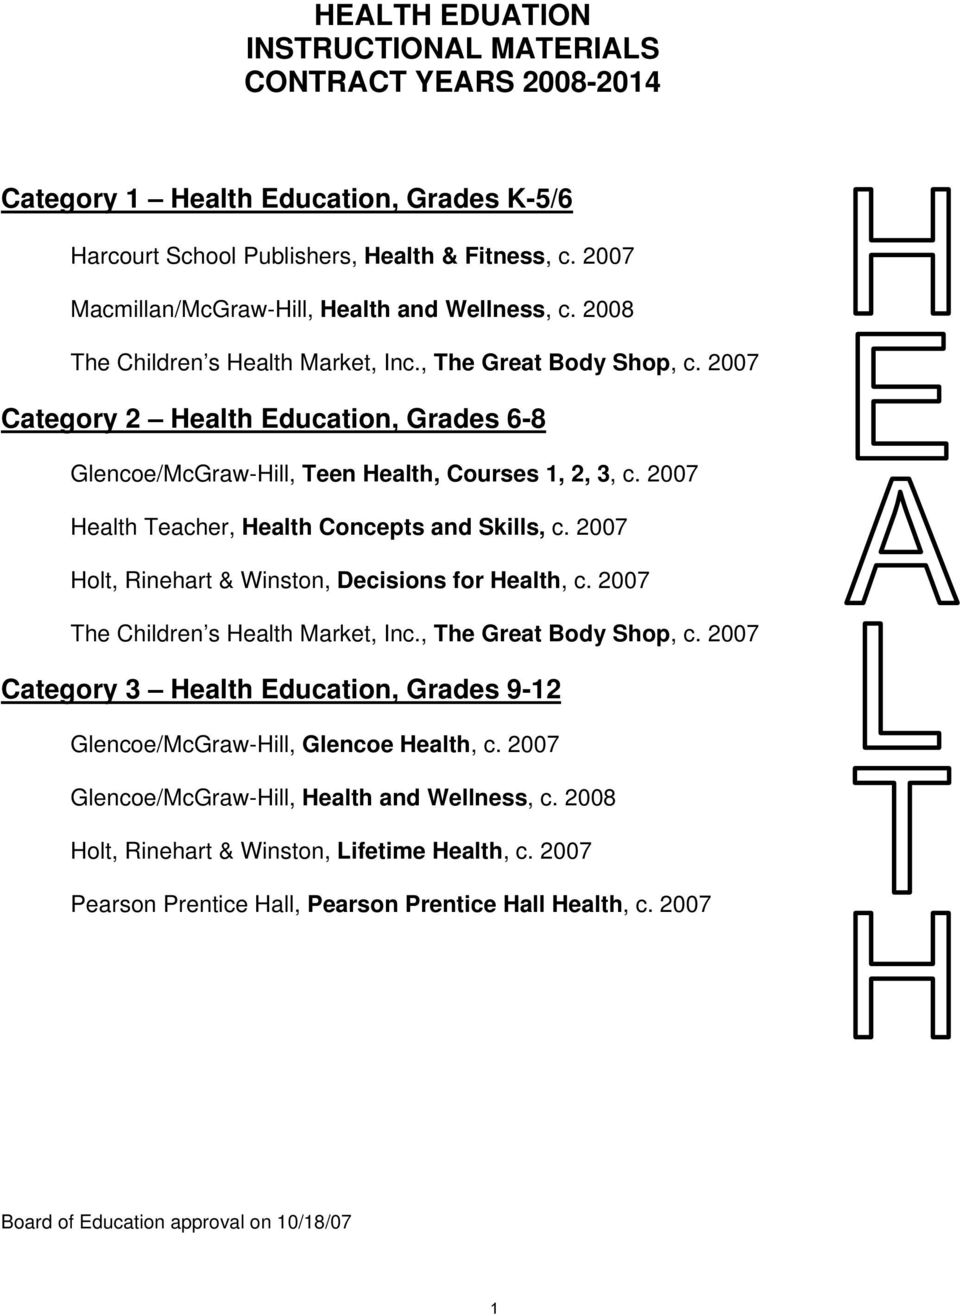 Health eduation instructional materials contract years pdf 2007 category 2 health education grades 6 8 glencoemcgraw hill fandeluxe Image collections